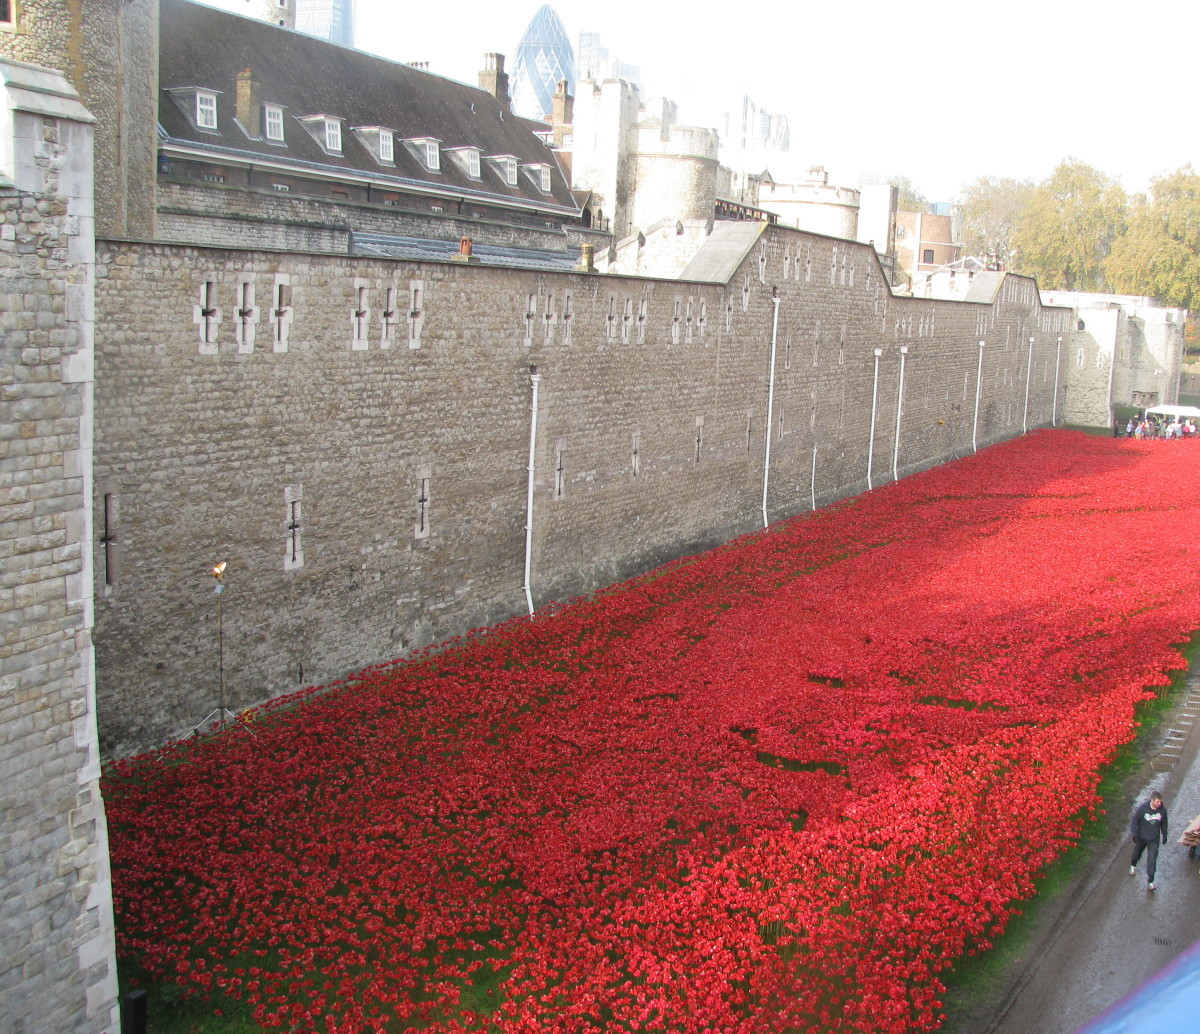 Remembrance with a Sea of Poppies: Art Installation at Tower of London commemorating the perished soldiers of WWI